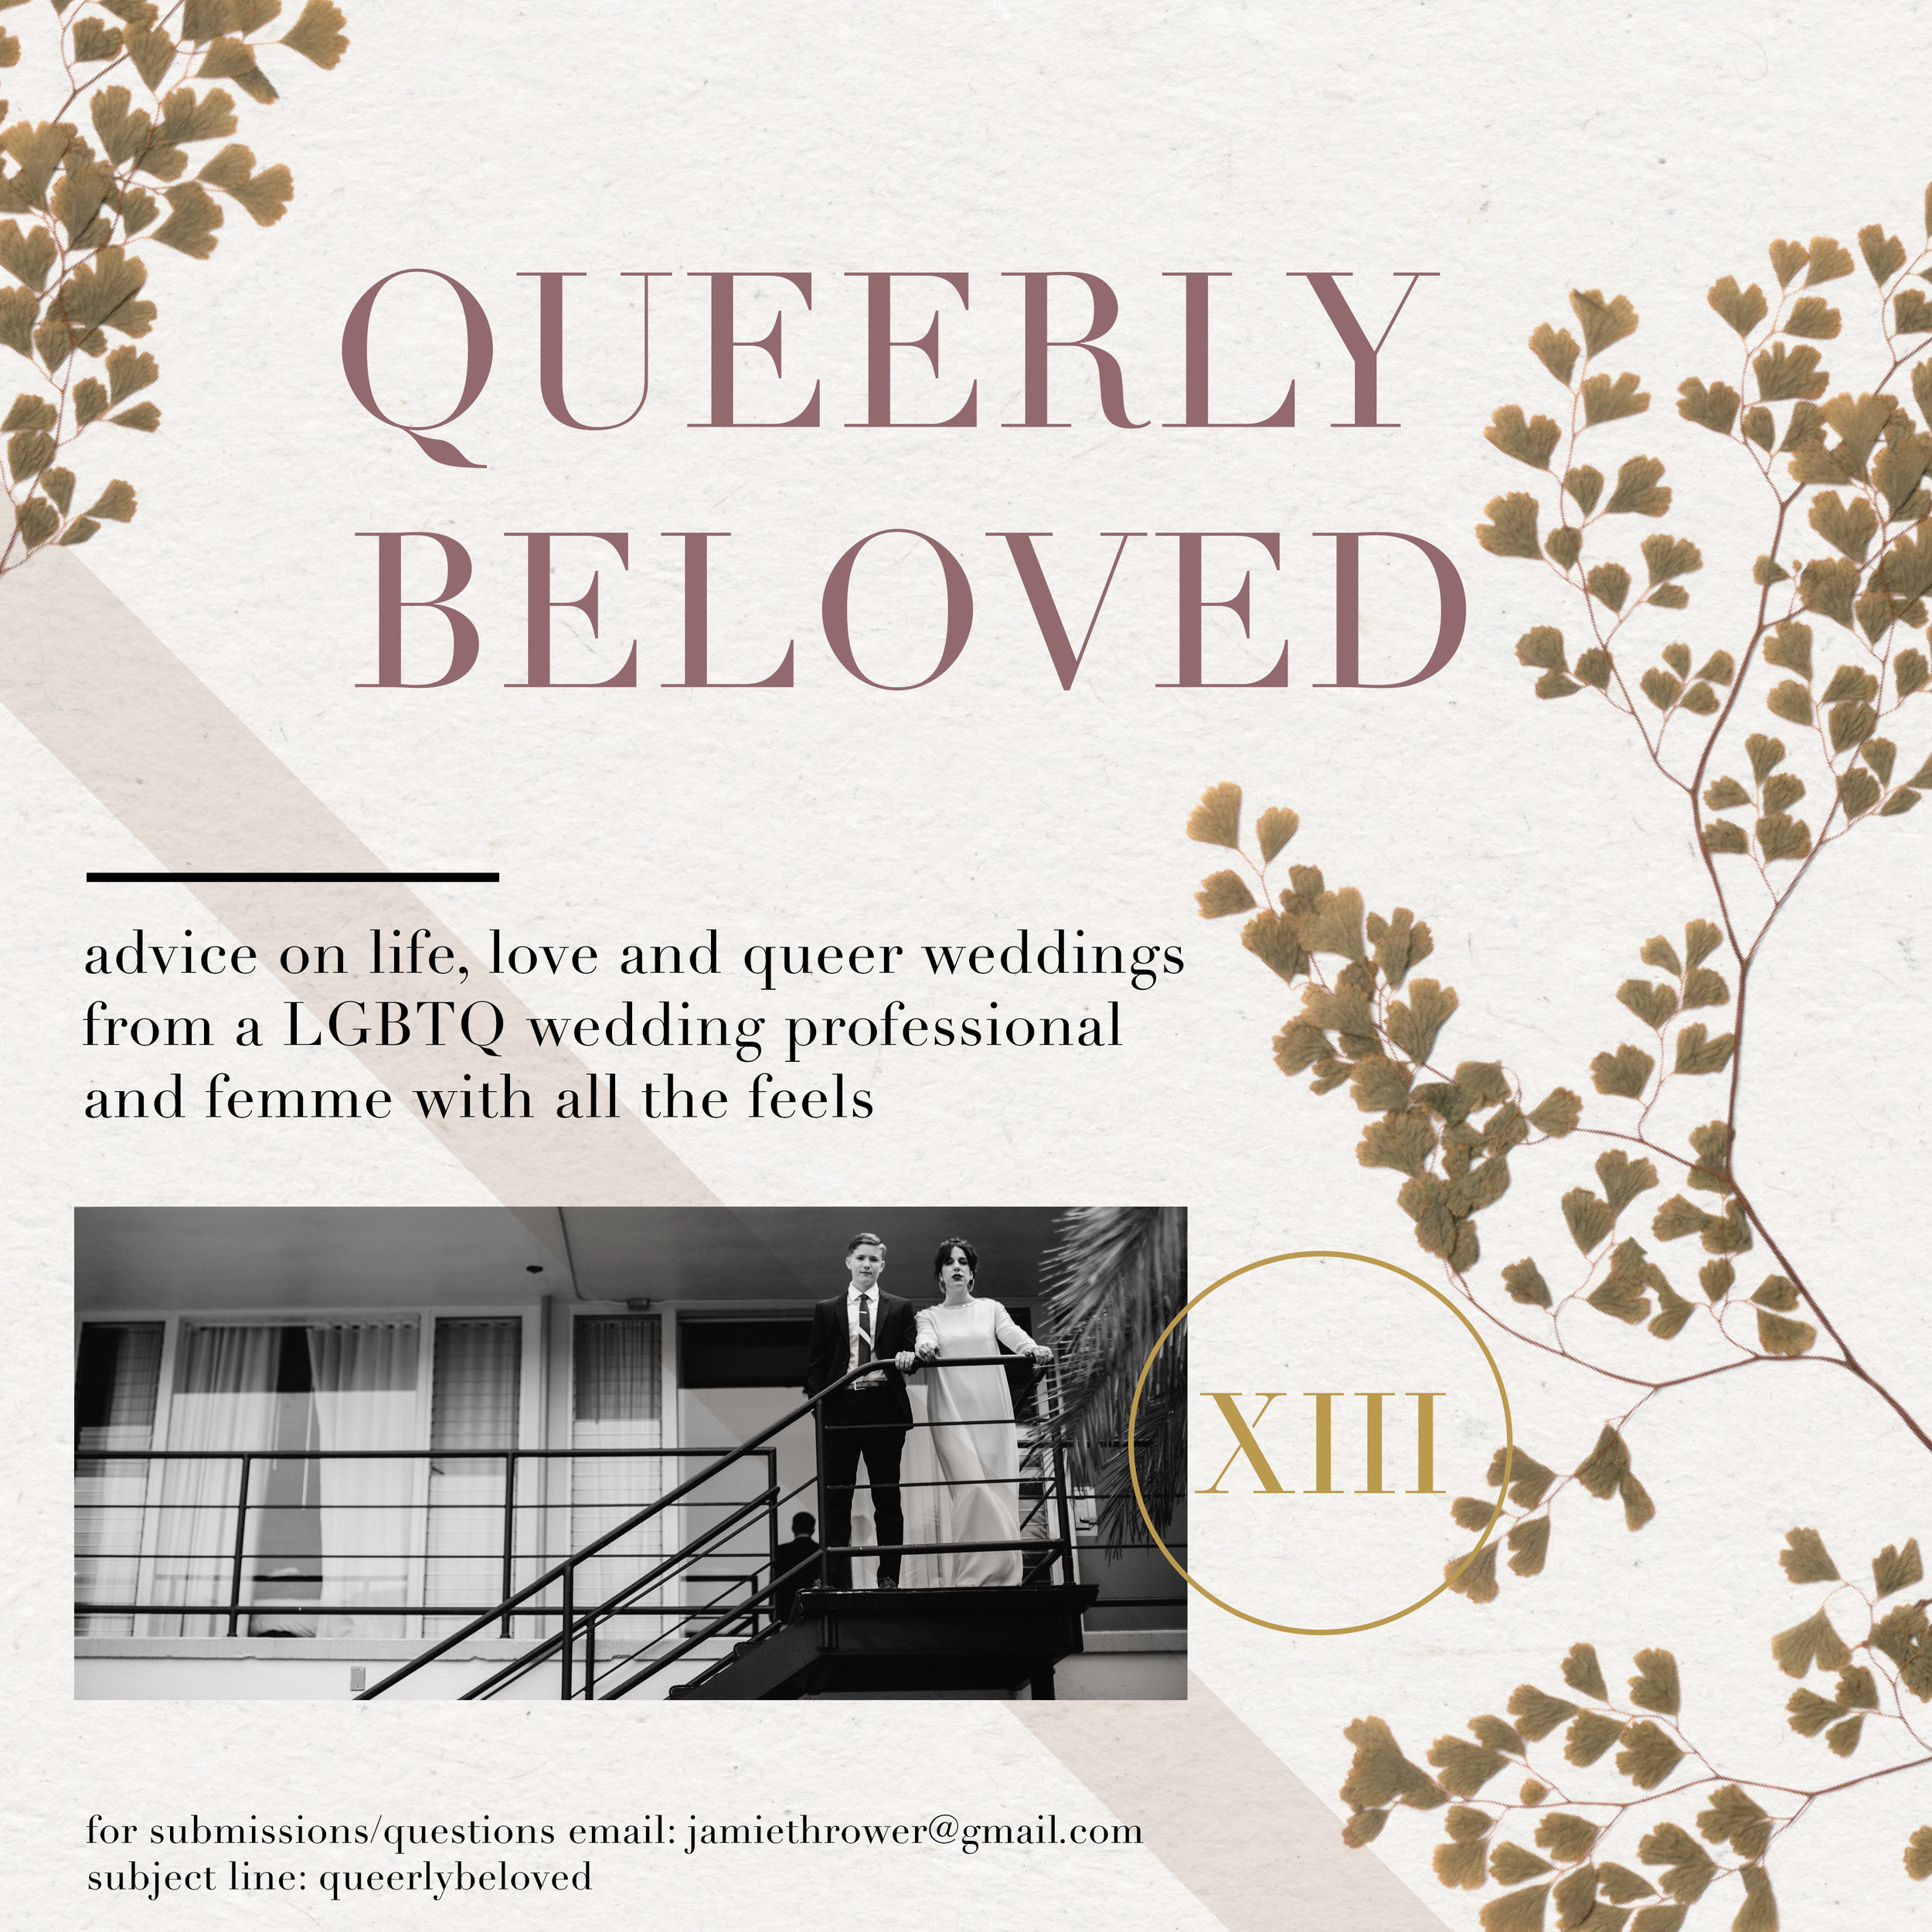 Make sure to check our our monthly column, Queerly Beloved!